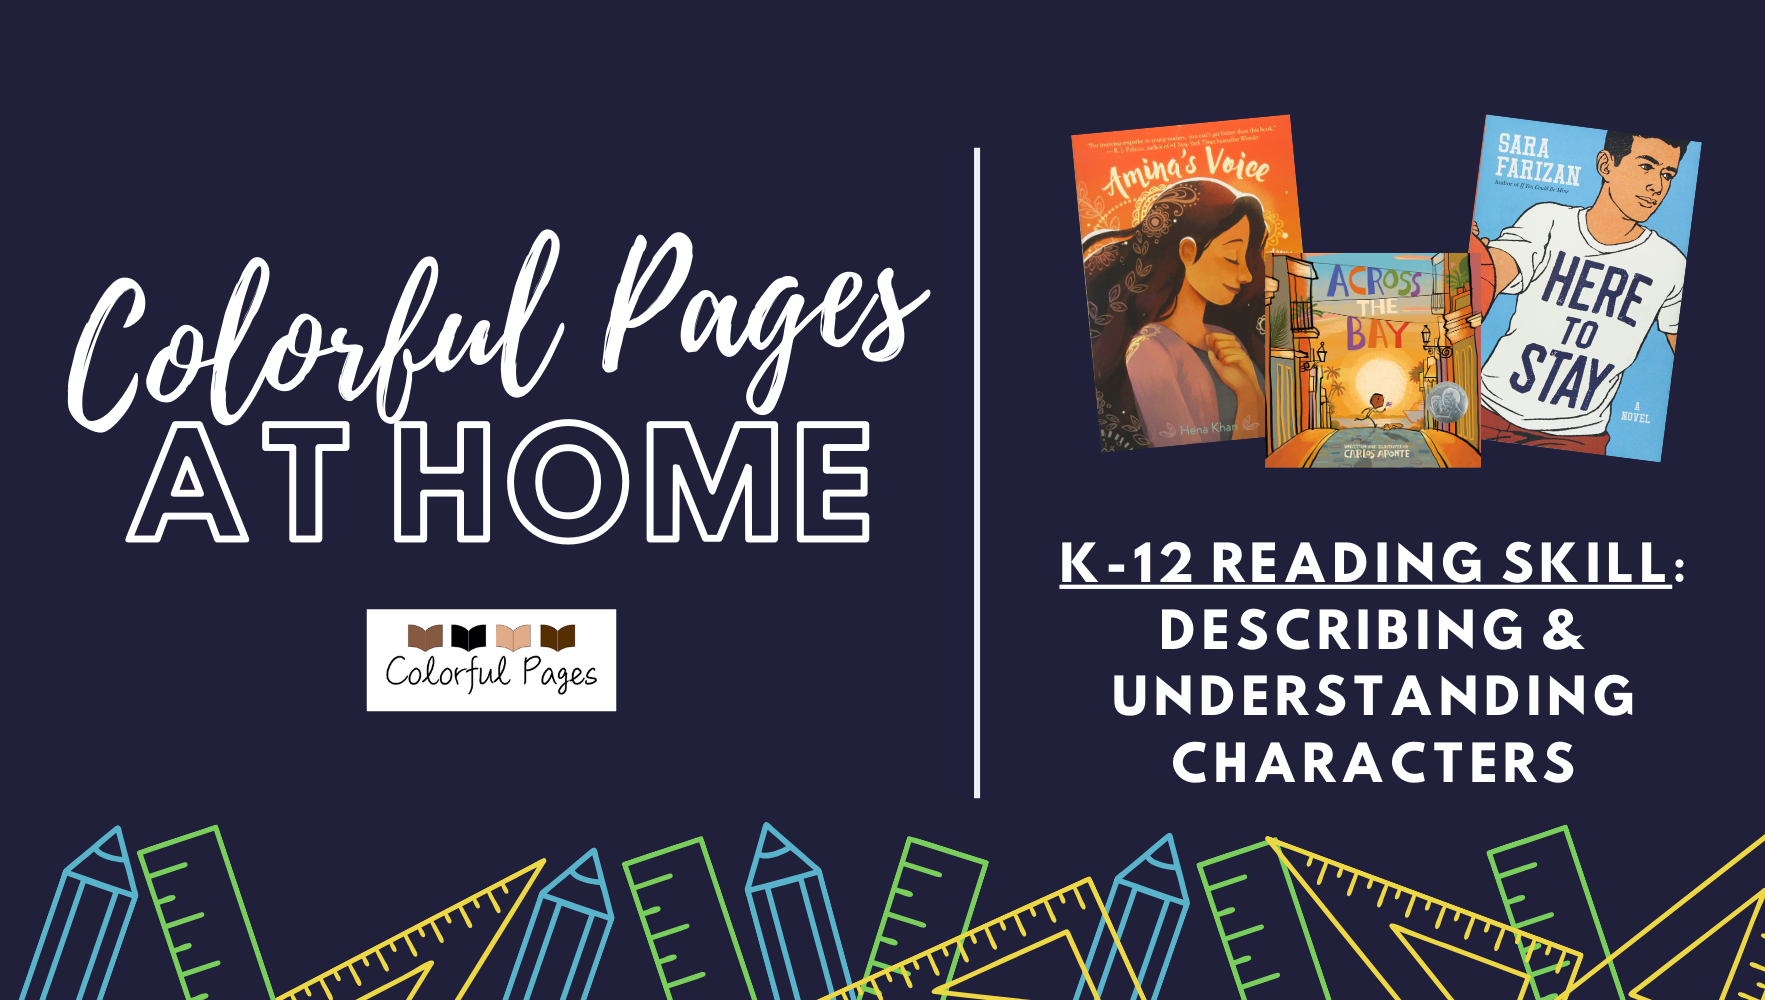 Colorful Pages at Home: Describing & Understanding Characters